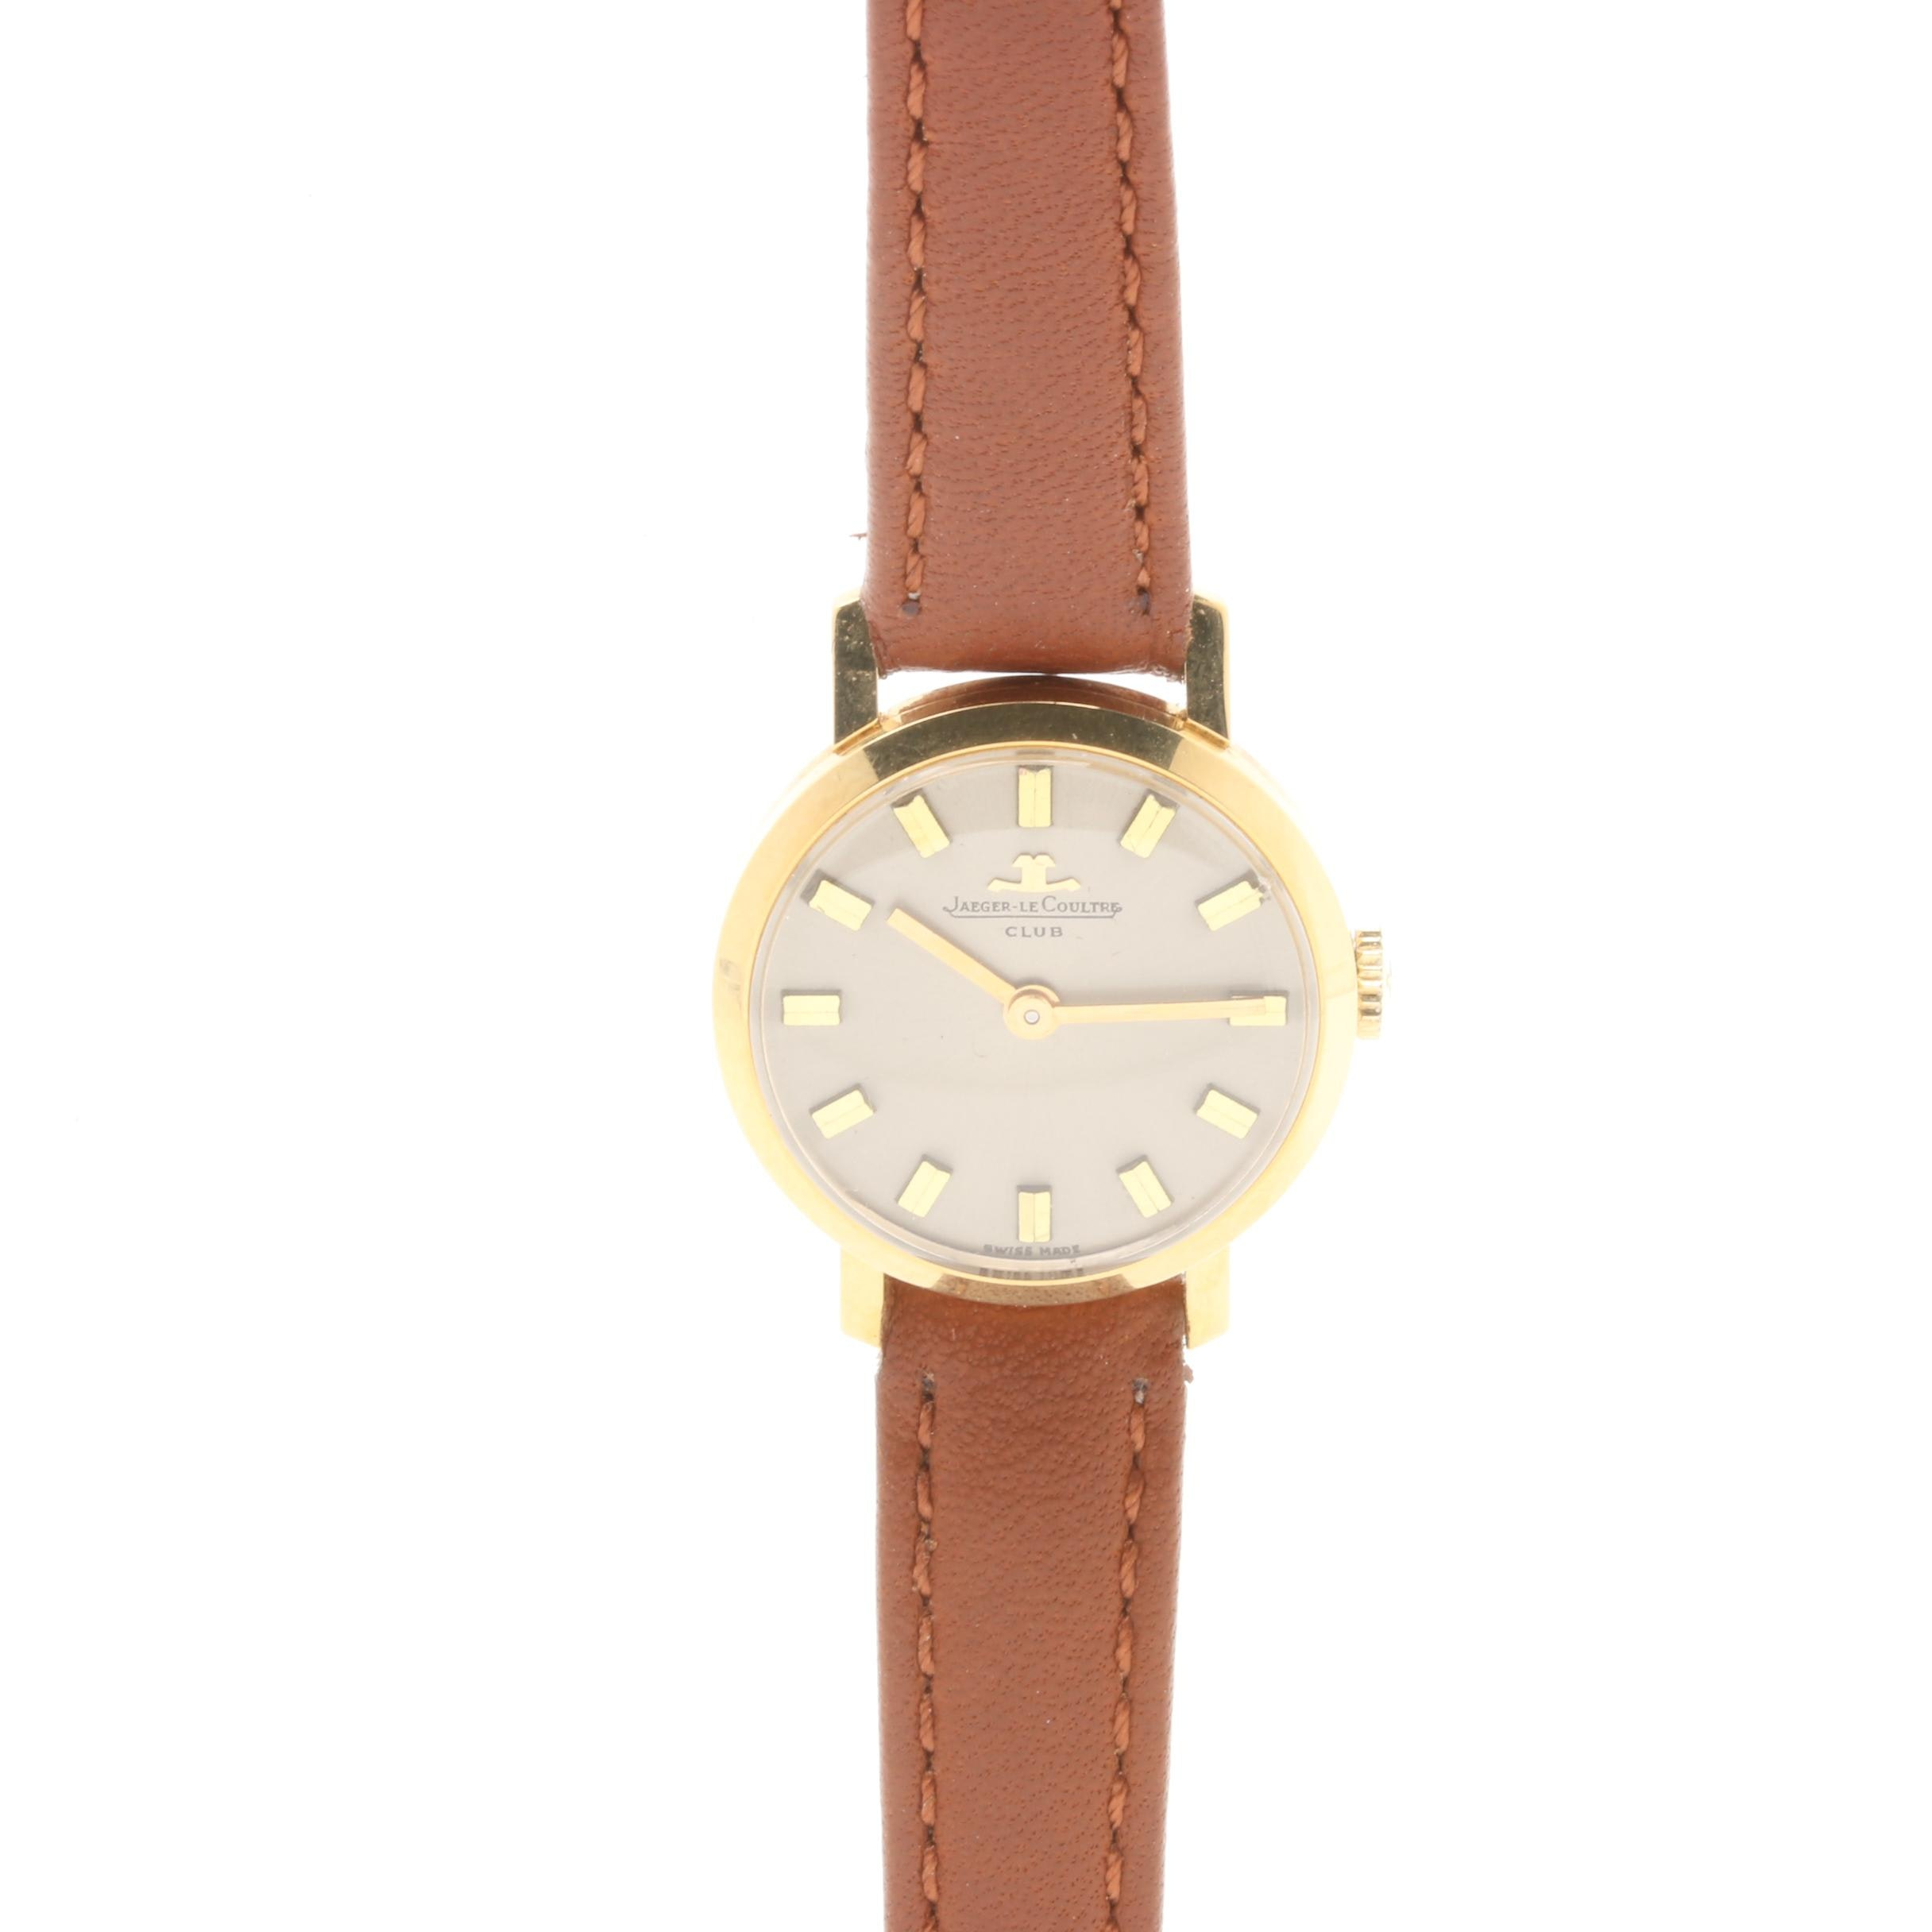 Jaeger-LeCoultre 18K Yellow Gold Brown Leather Wristwatch